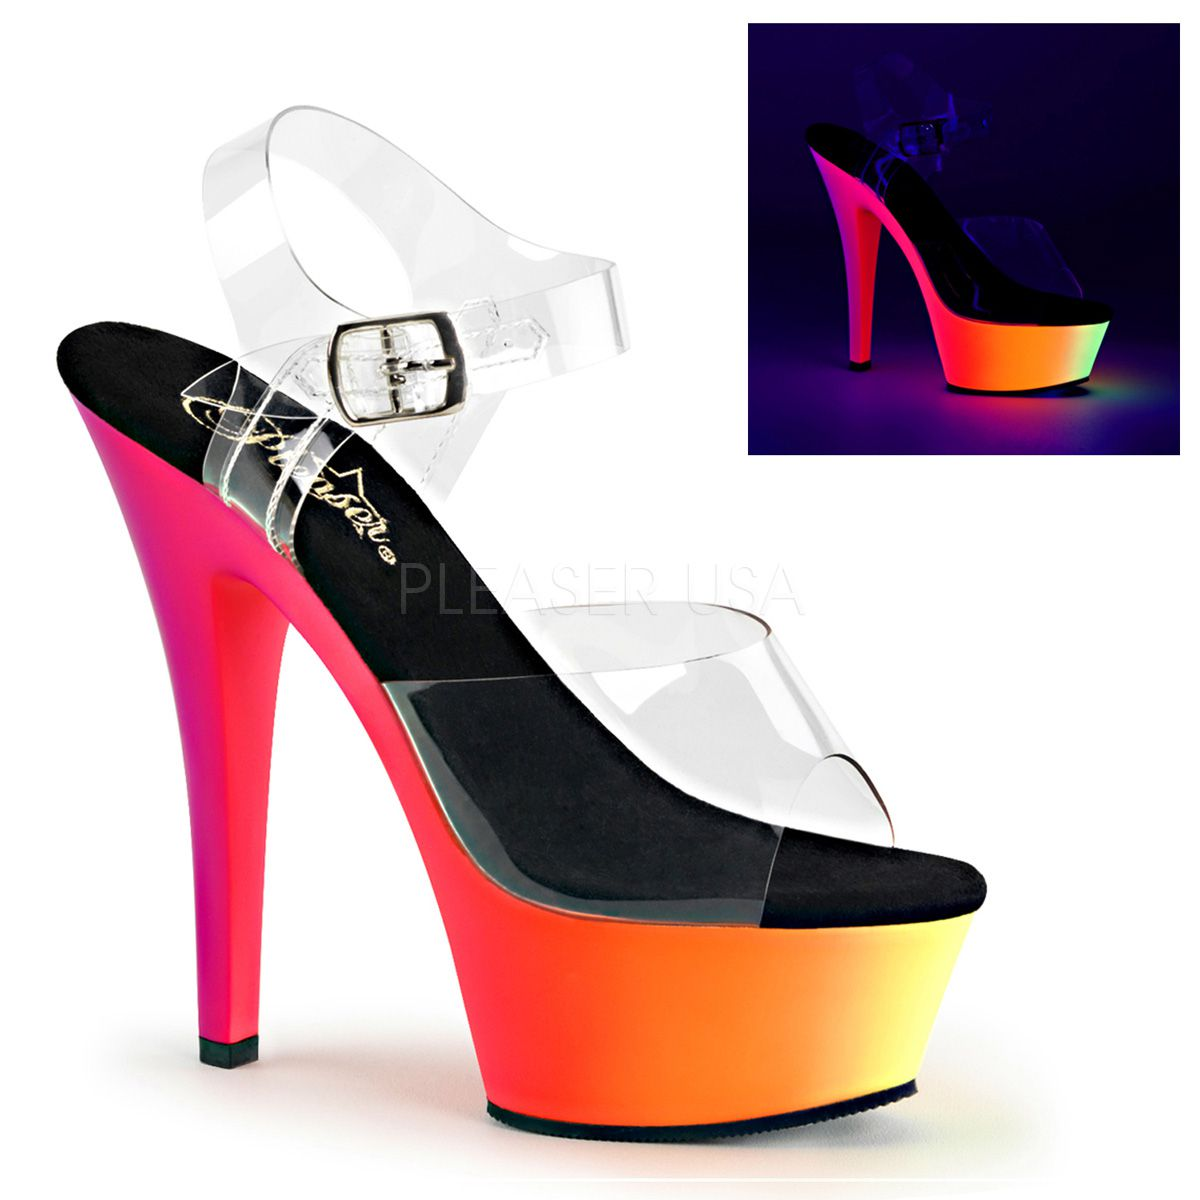 Sandália Rainbow 208 UV Transparente - Pleaser (encomenda)